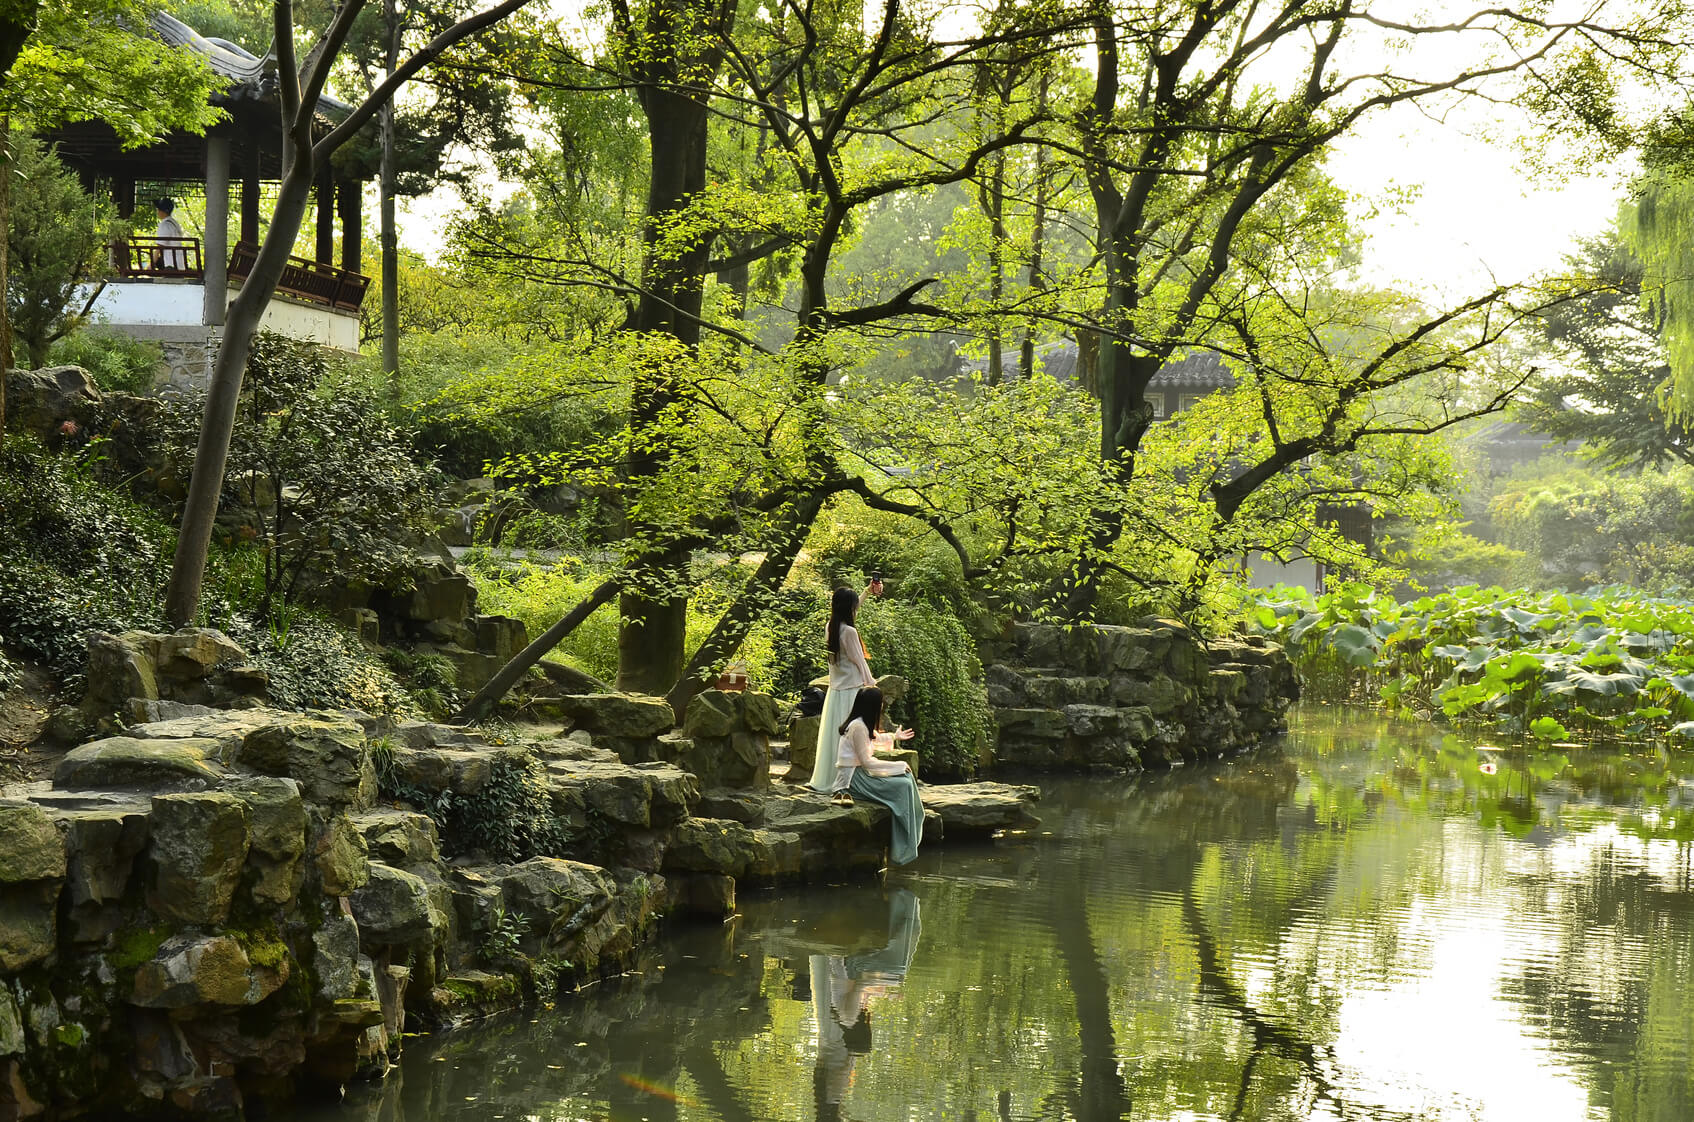 The scenery of Humble Administrator's Garden at Suzhou, China. | The TEFL Academy - Teaching English in China